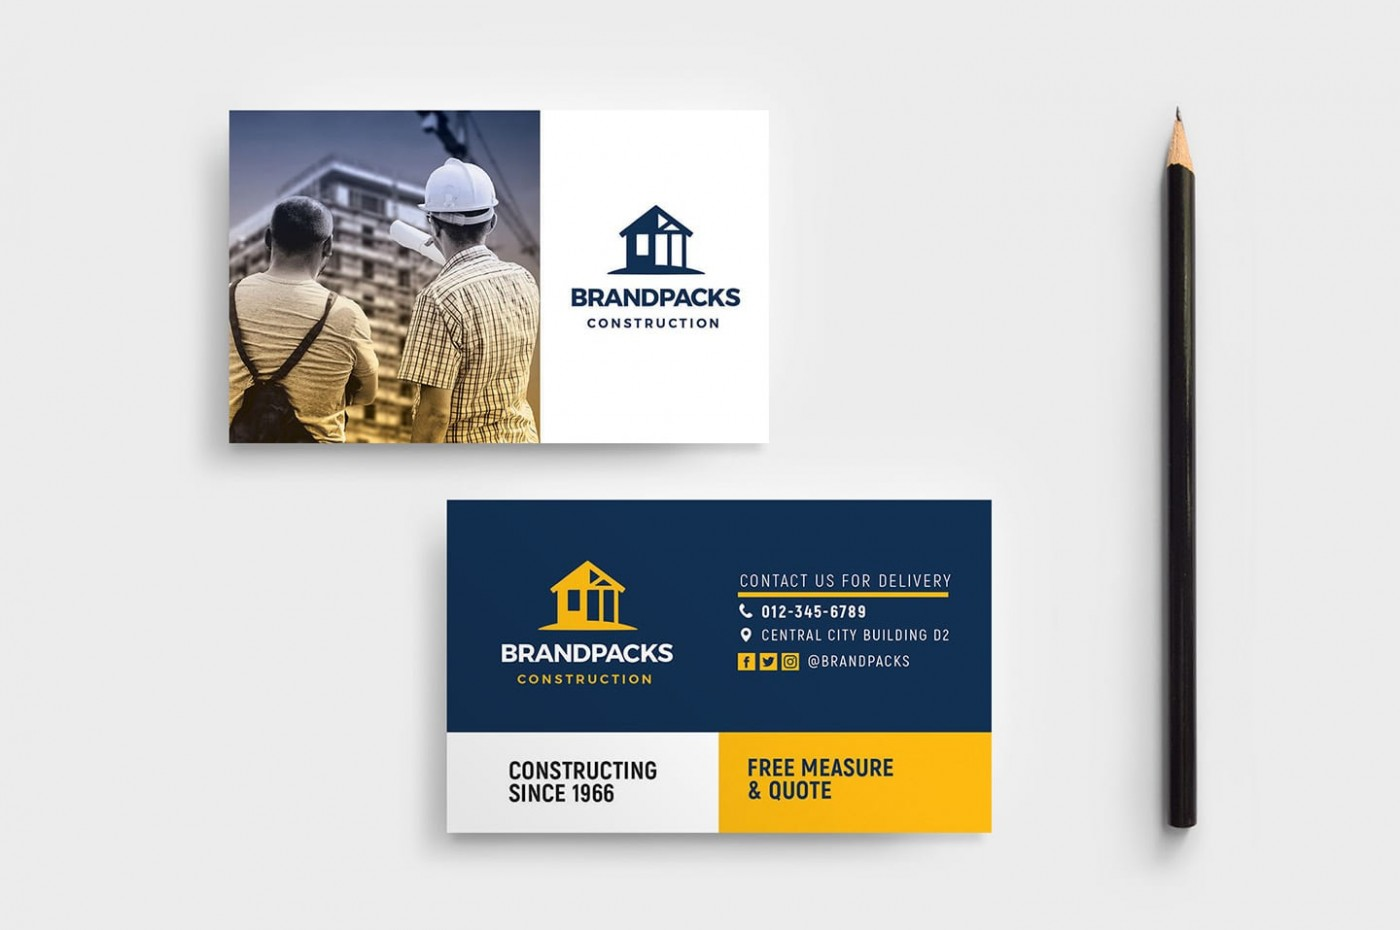 005 Unforgettable Construction Busines Card Template High Definition  Company Visiting Format Word For Material1400